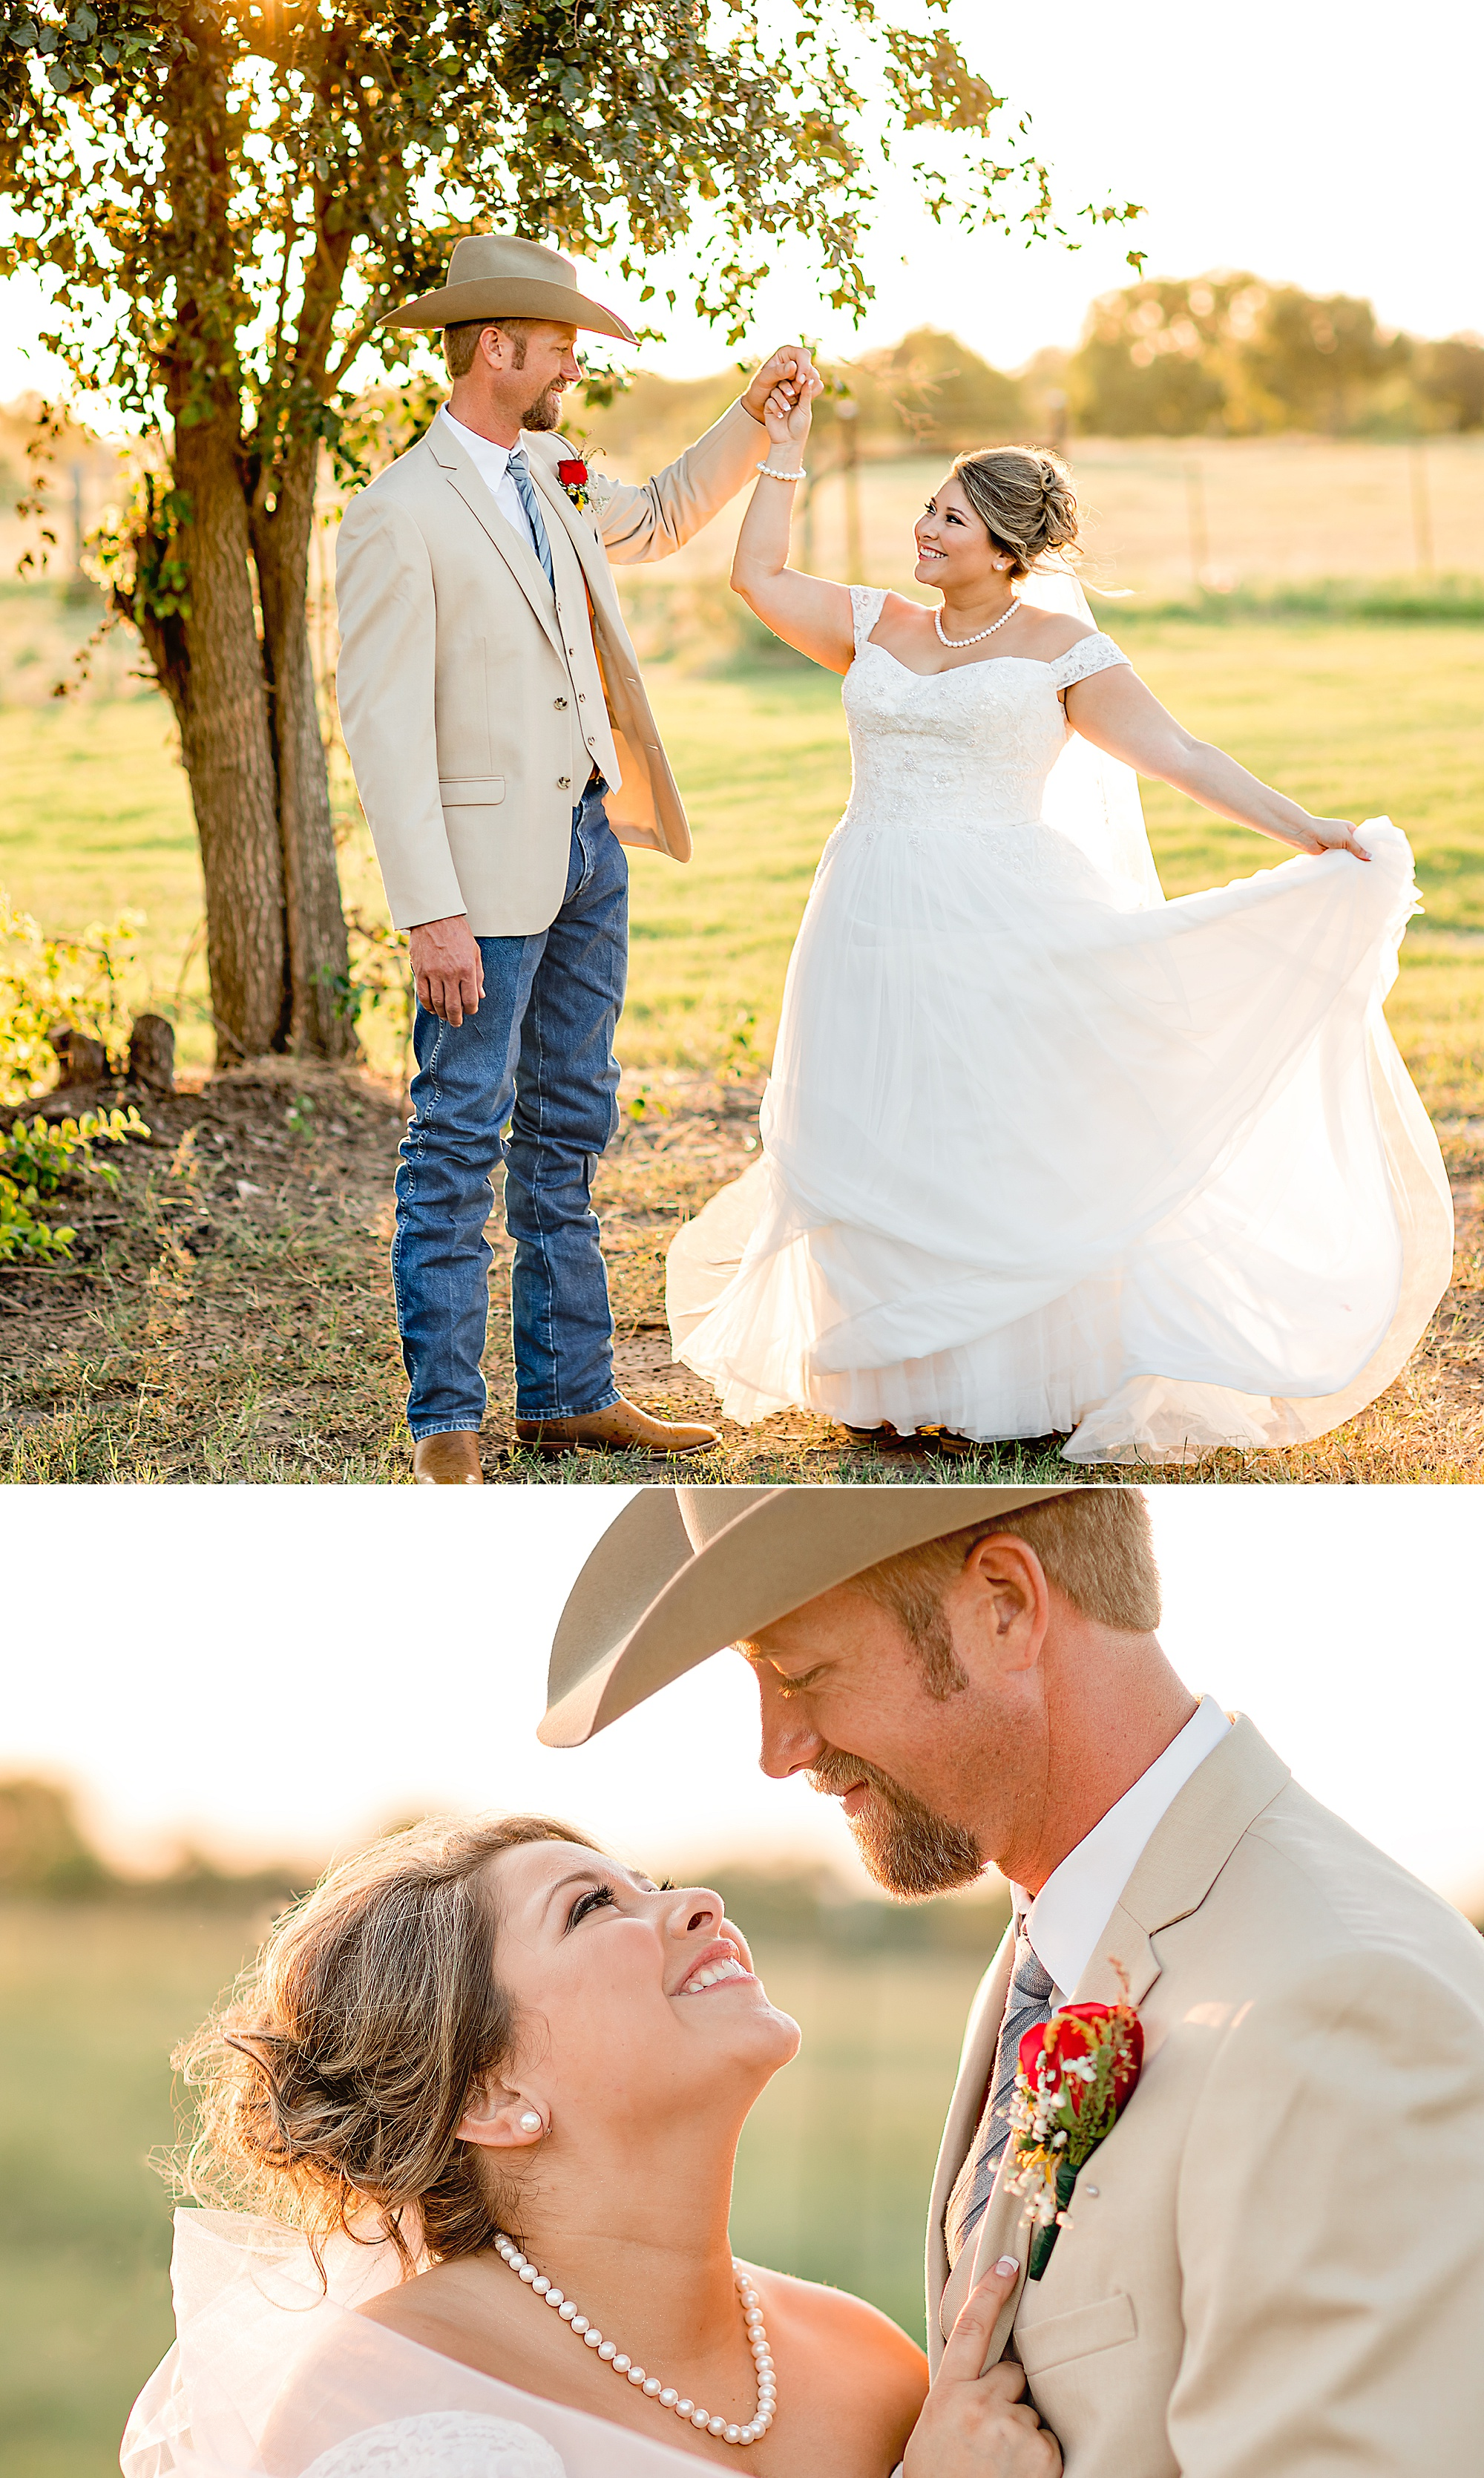 Wedding-Photographer-Rustic-Sunflower-theme-Texas-Carly-Barton-Photography_0117.jpg